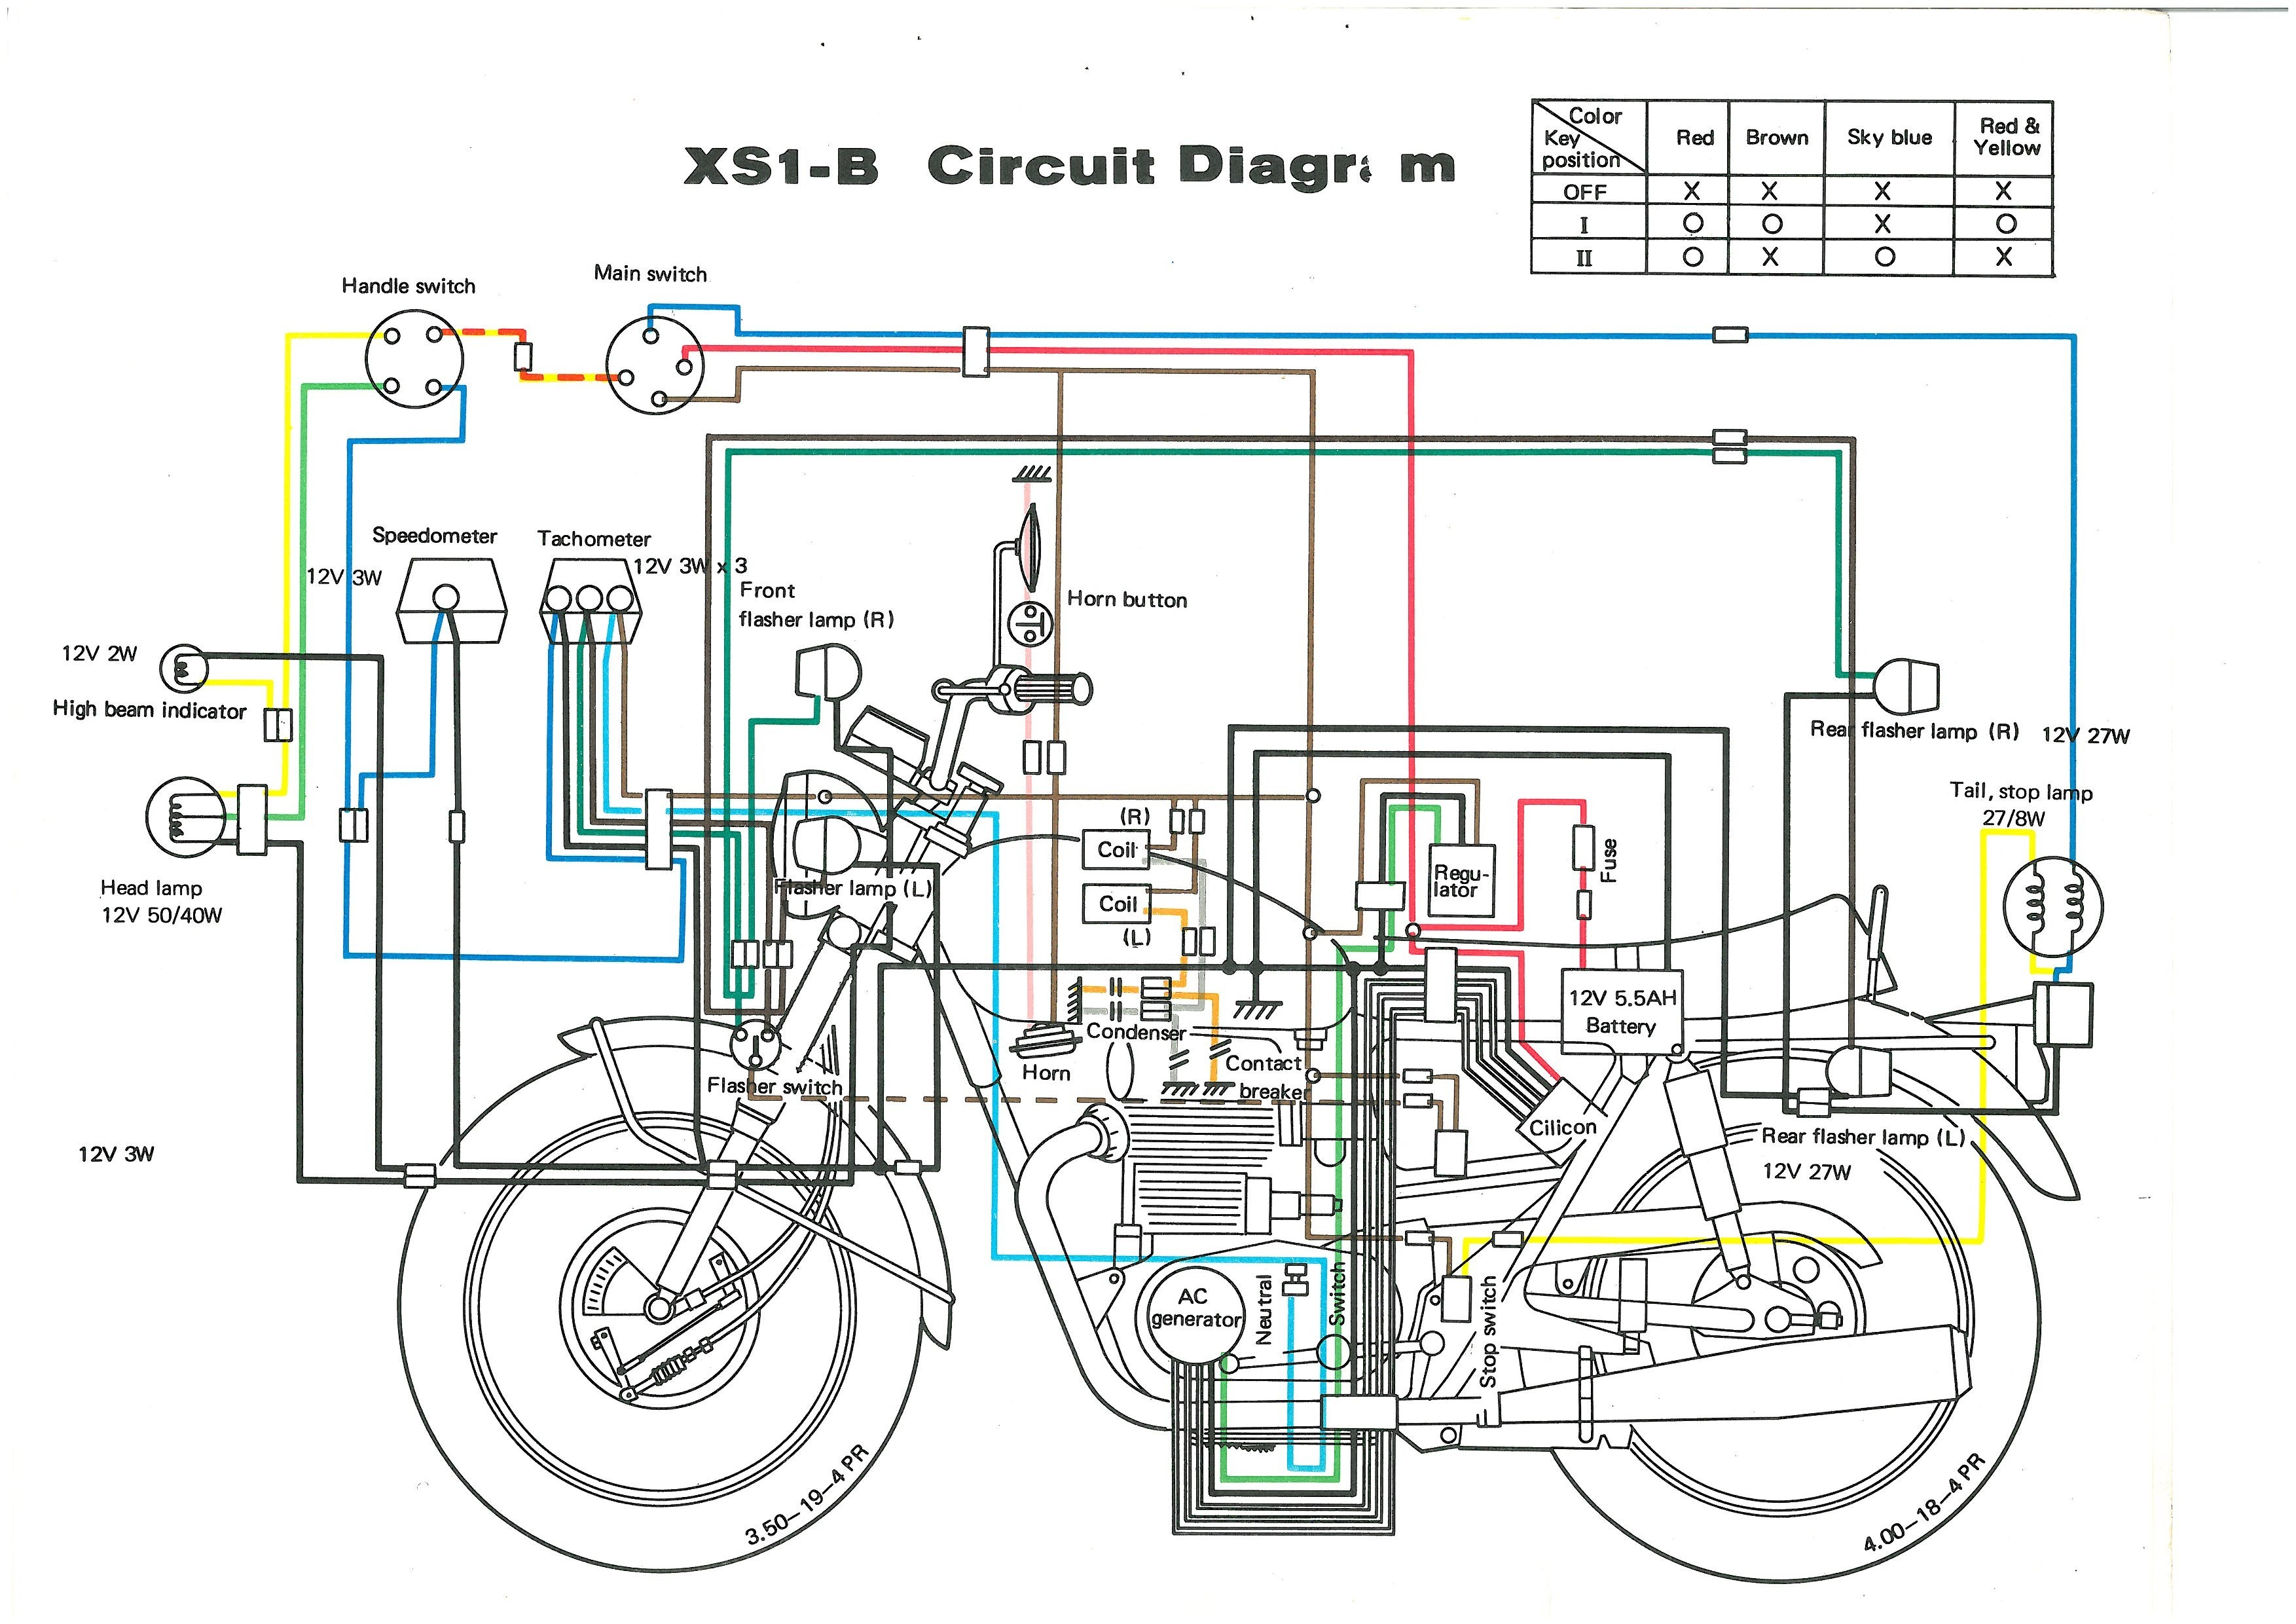 Yamaha 1100 Wiring Diagram Schematic Diagrams 1982 Maxim Xj1100 750 Smart U2022 650 Chopper